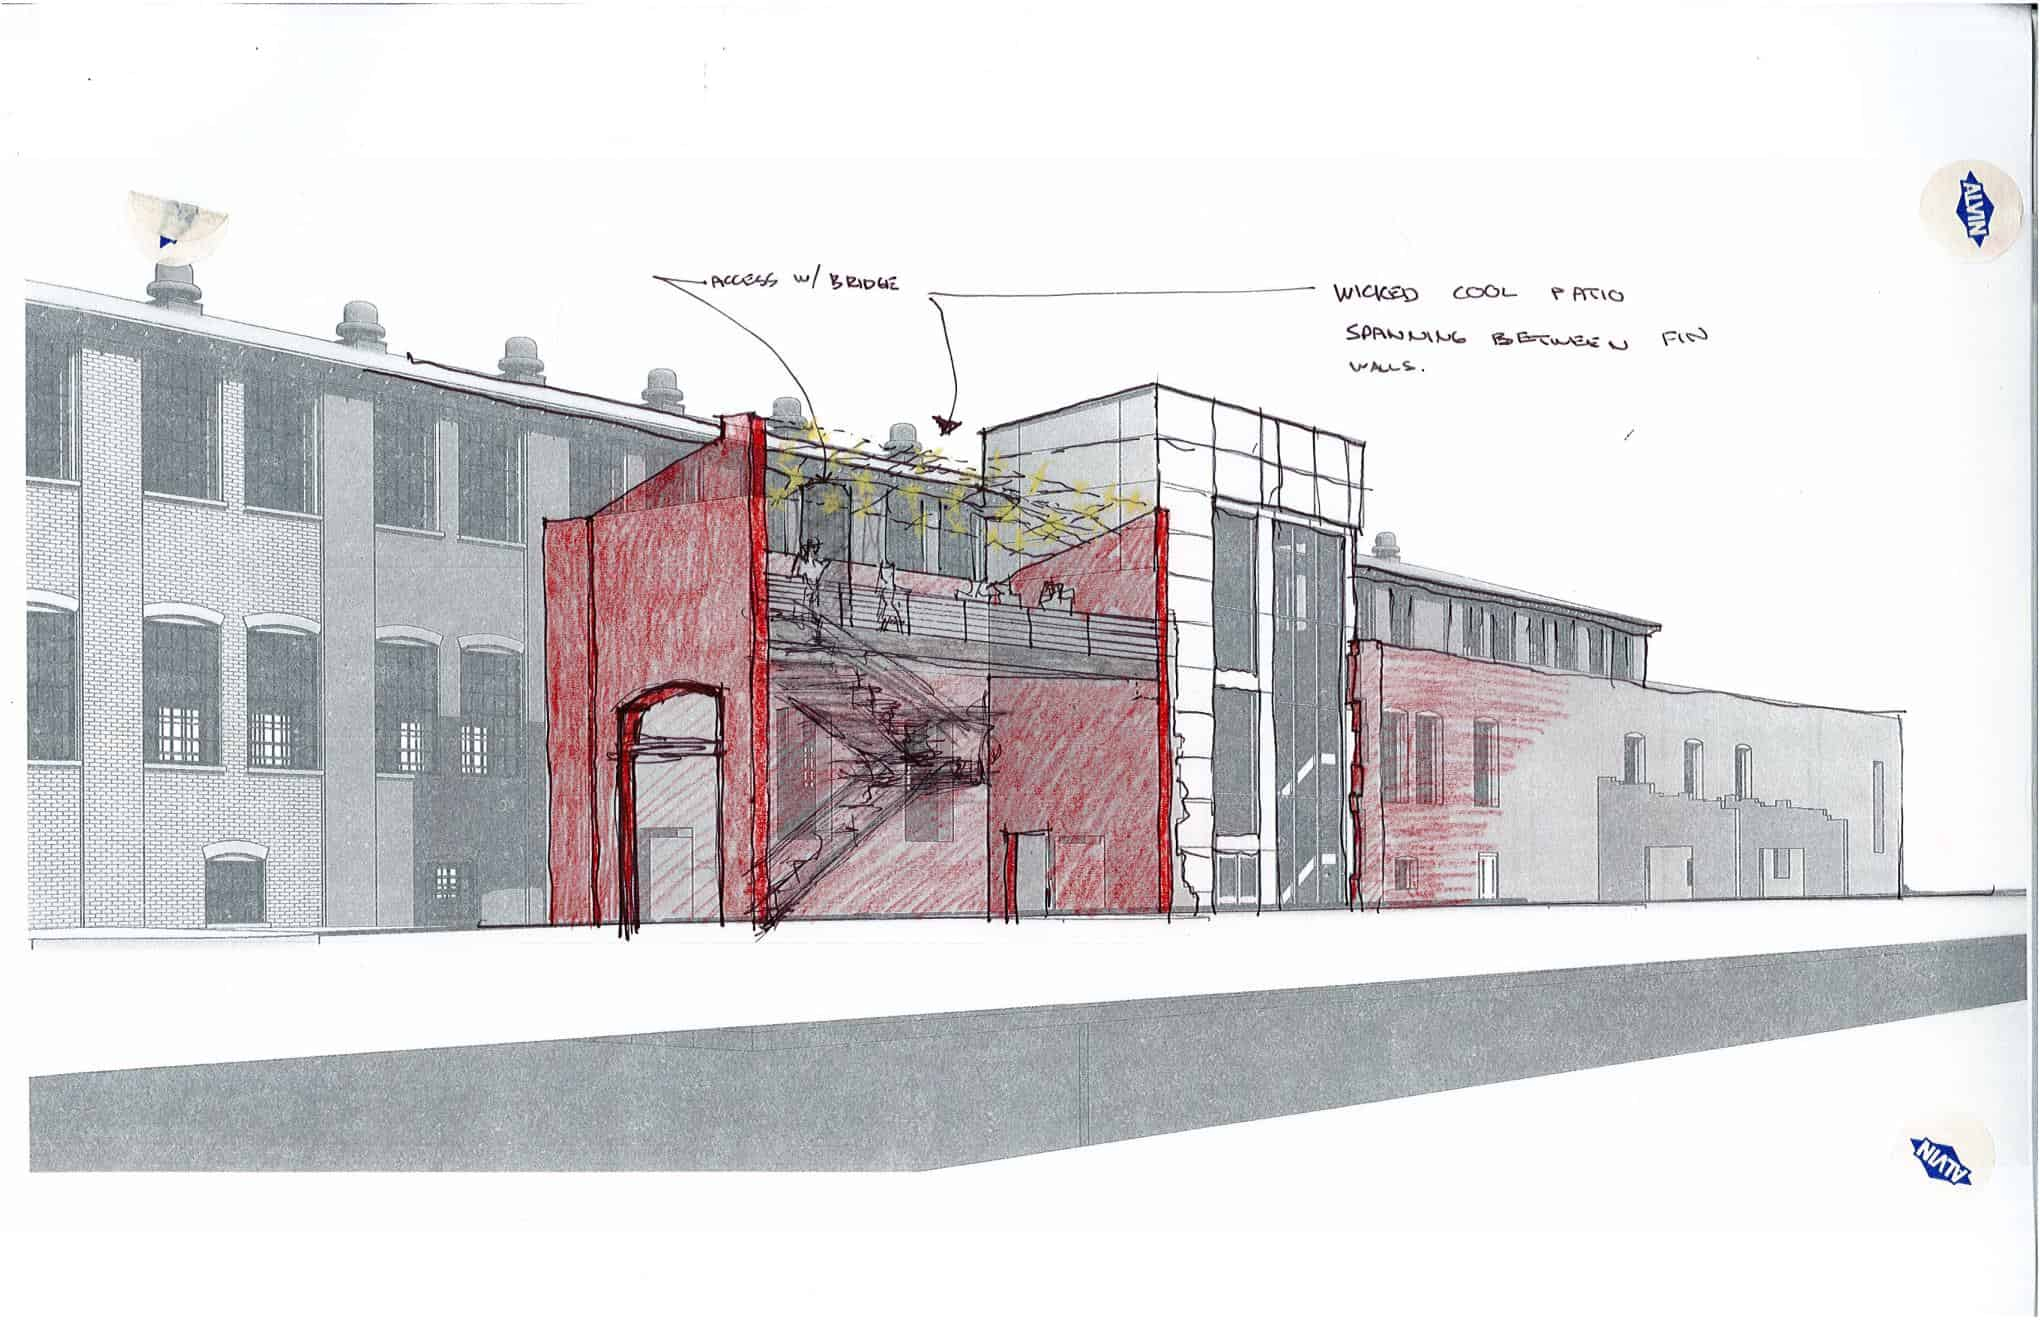 East Wing Wall Patio Sketch1 2016.12.14